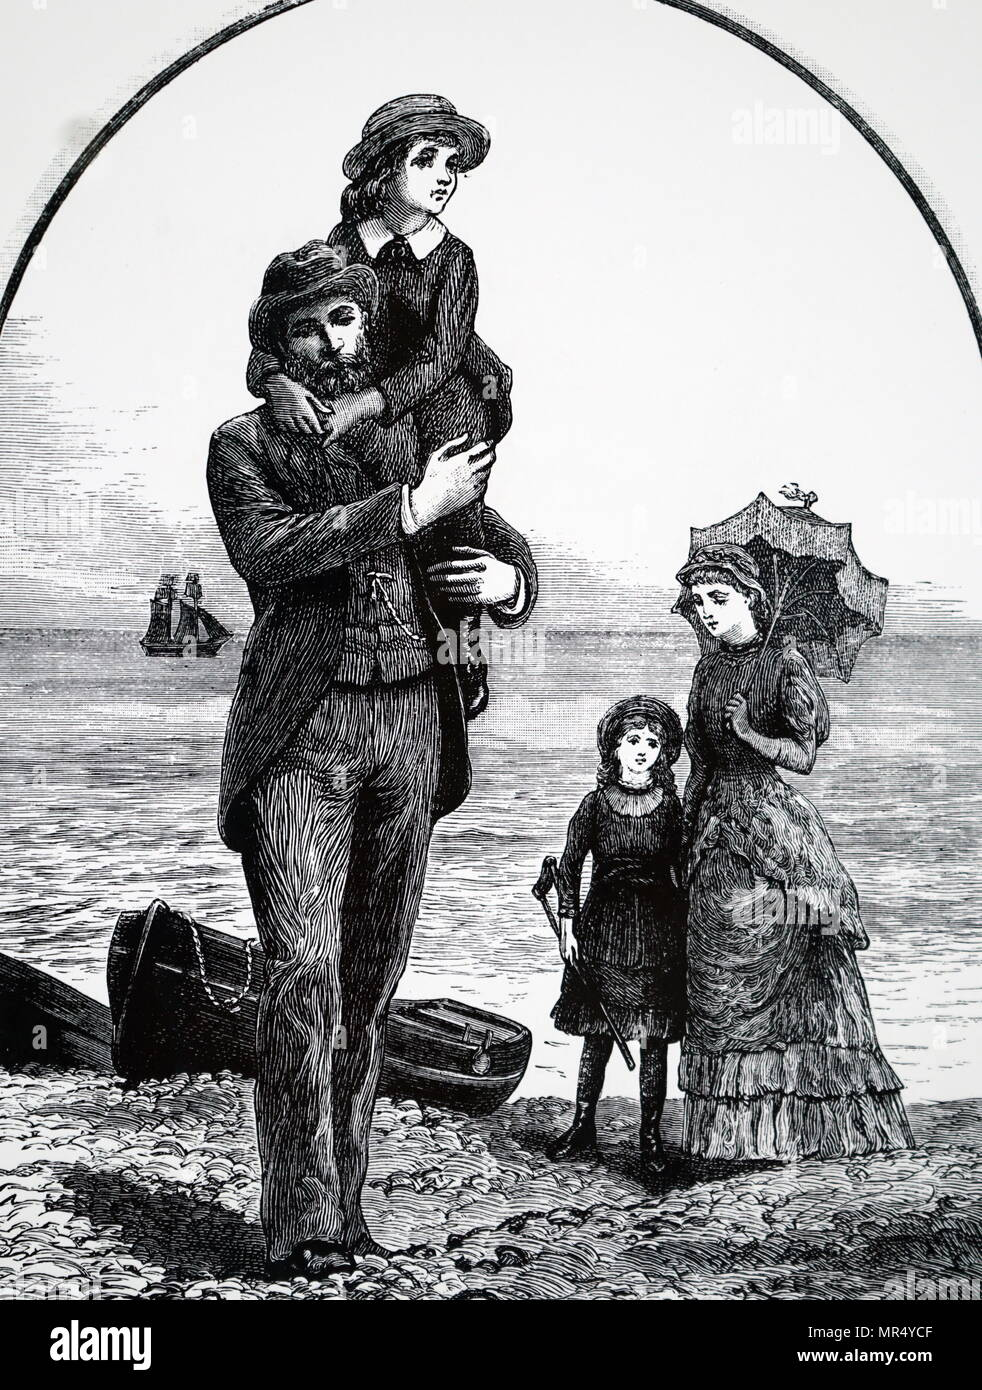 Illustration depicting a typical middle-class Victorian family at the seaside. Illustrated by Everard Hopkins (1860-1928) a British artist and illustrator. Dated 19th century - Stock Image